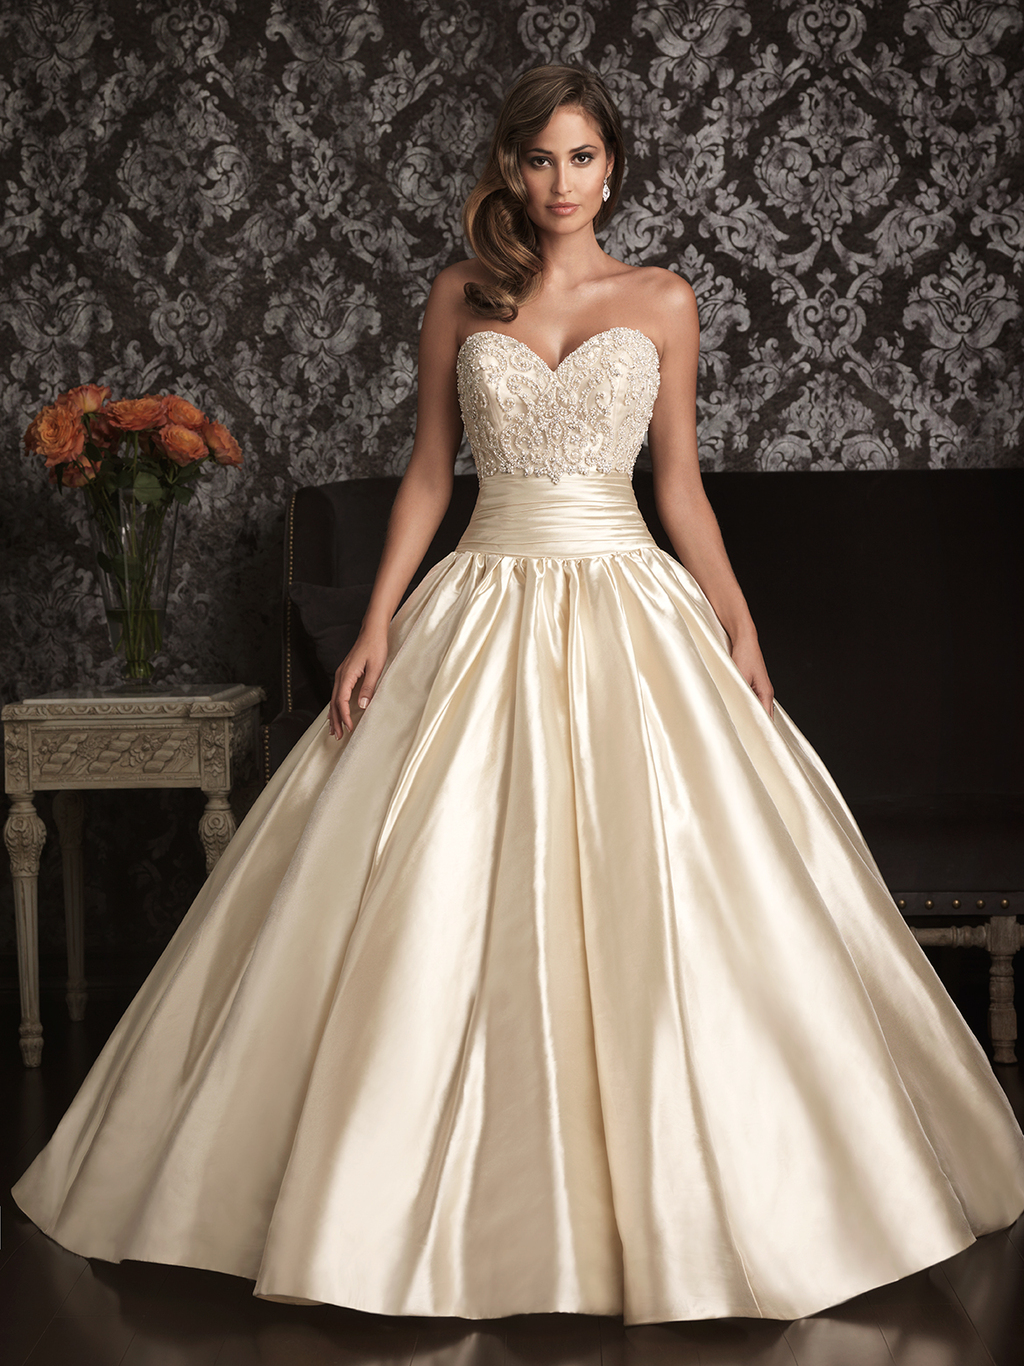 Allure-bridals-wedding-dress-bridal-gown-allure-collection-sweetheart-9001f.full